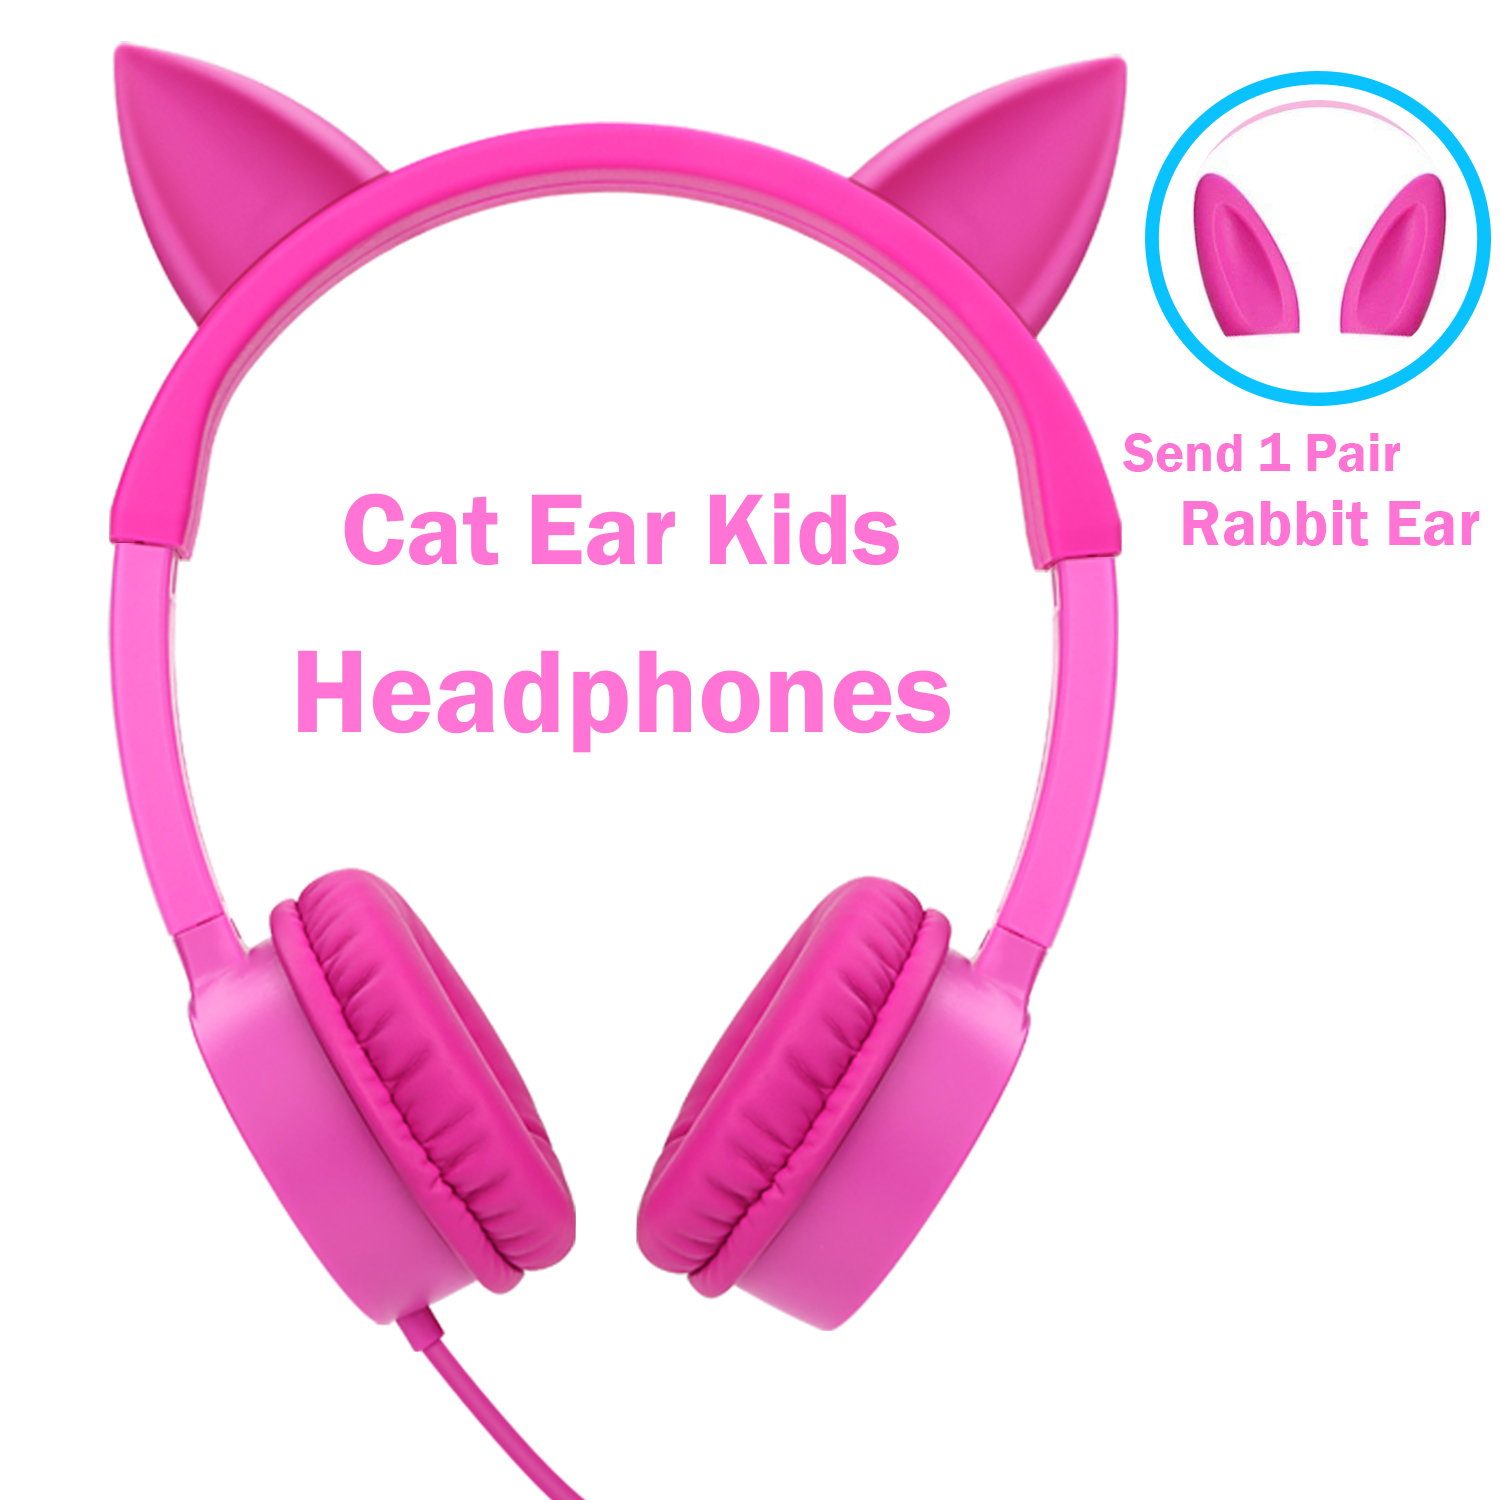 Kids Headphones, Vogek 2 in 1 Cat / Rabbit Wired On-Ear Headphones Headsets with 85dB Volume Limited, Children Headphones for Kids-Pink